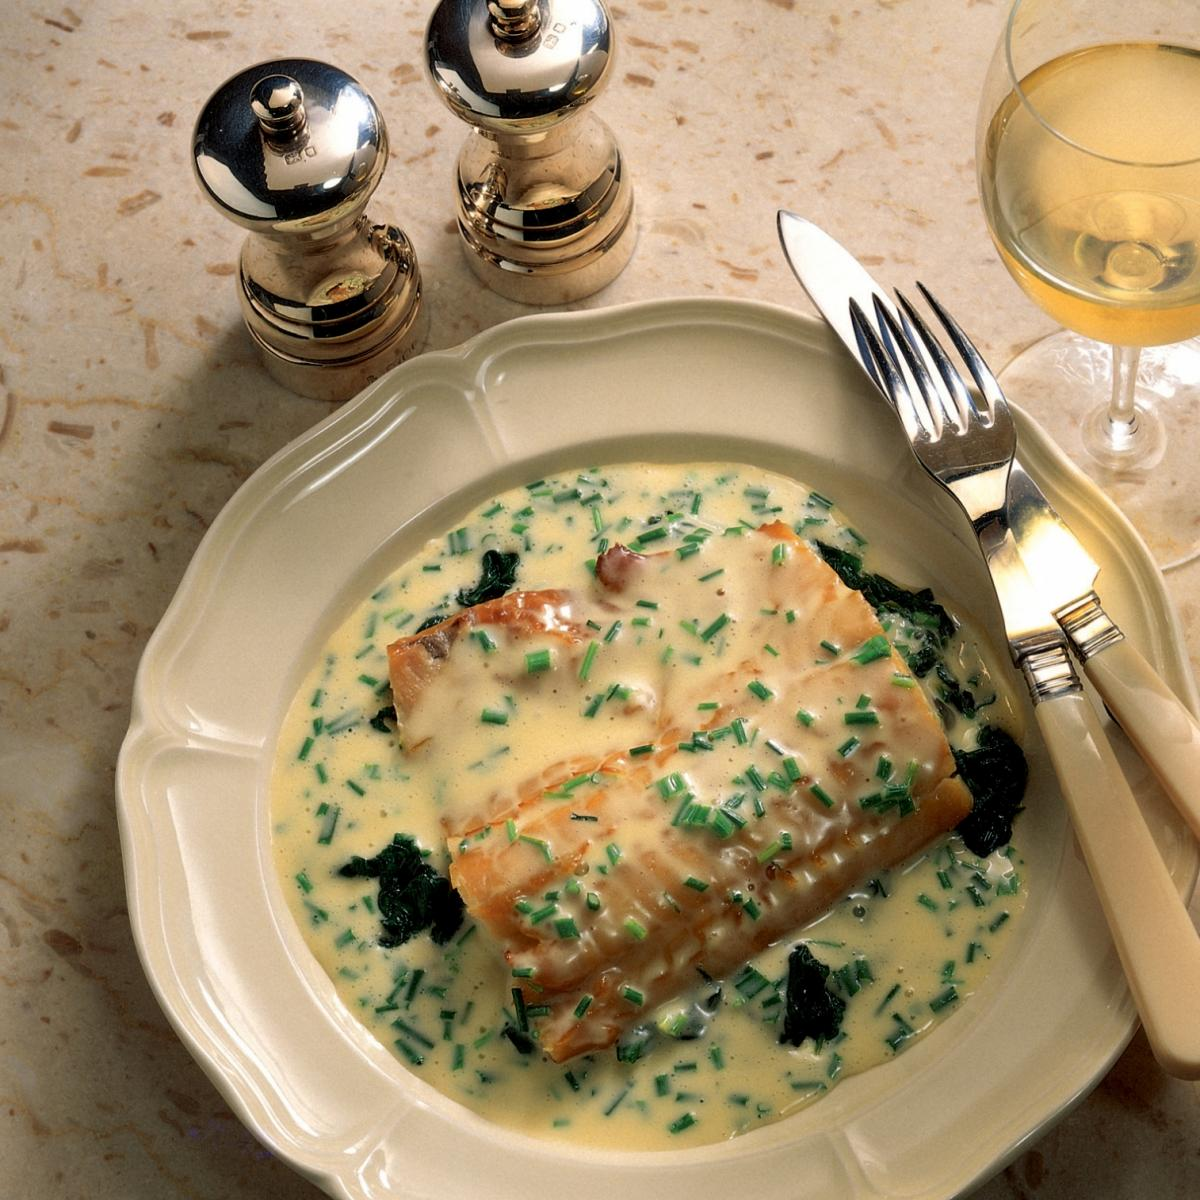 Winter smoked haddock with spinach and chive butter sauce